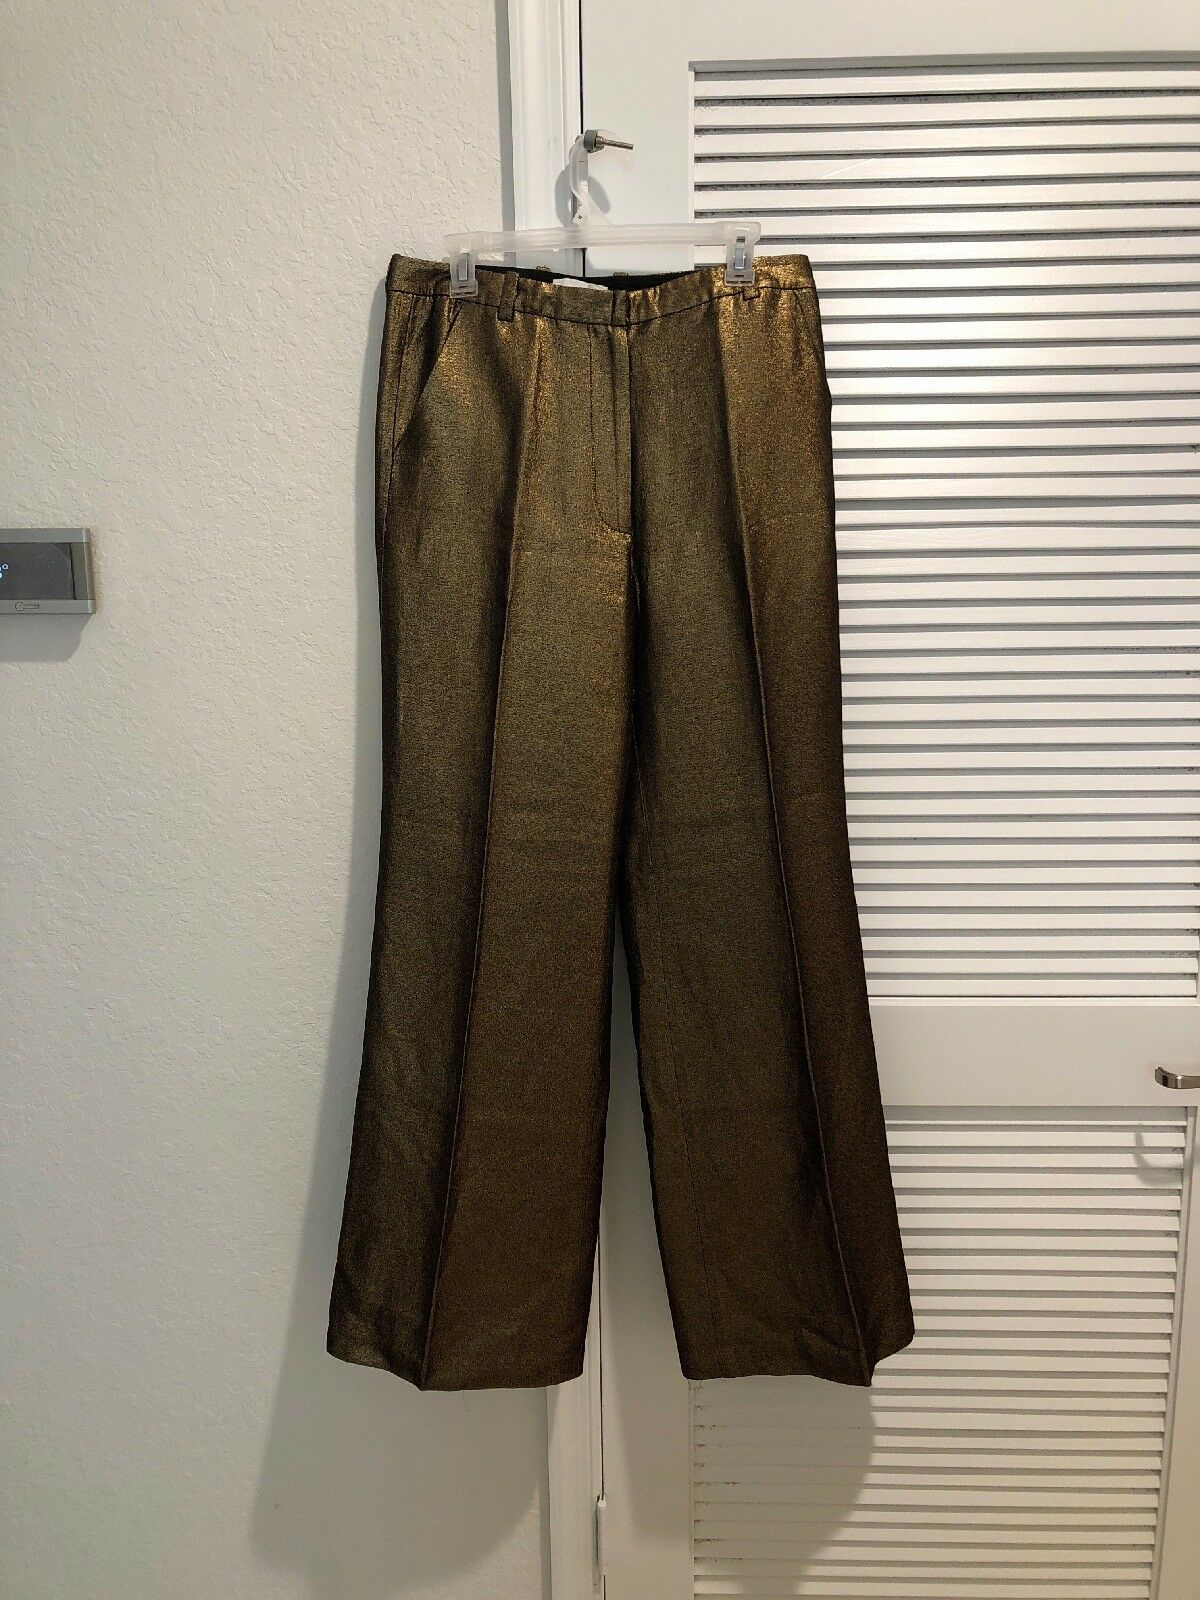 PHILLIP PLEIN  gold PANTS With SILK Lining Size 10